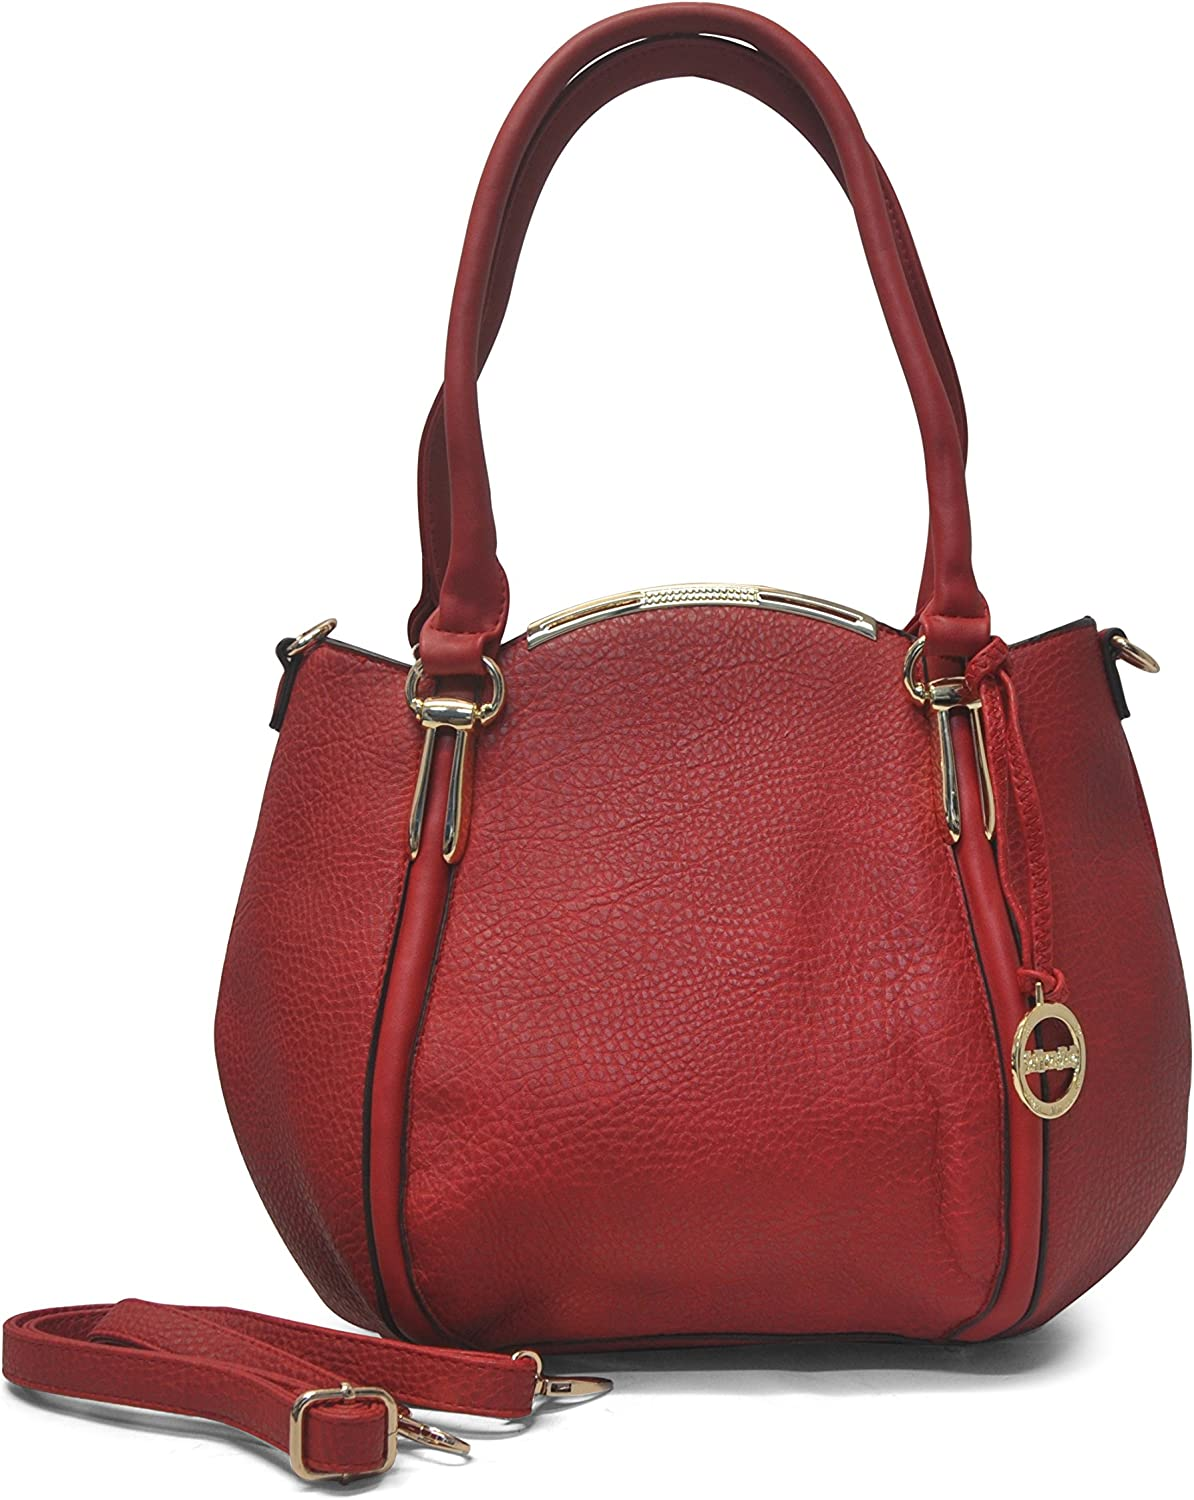 Sorrentino Sori Collection No 790 Satchel